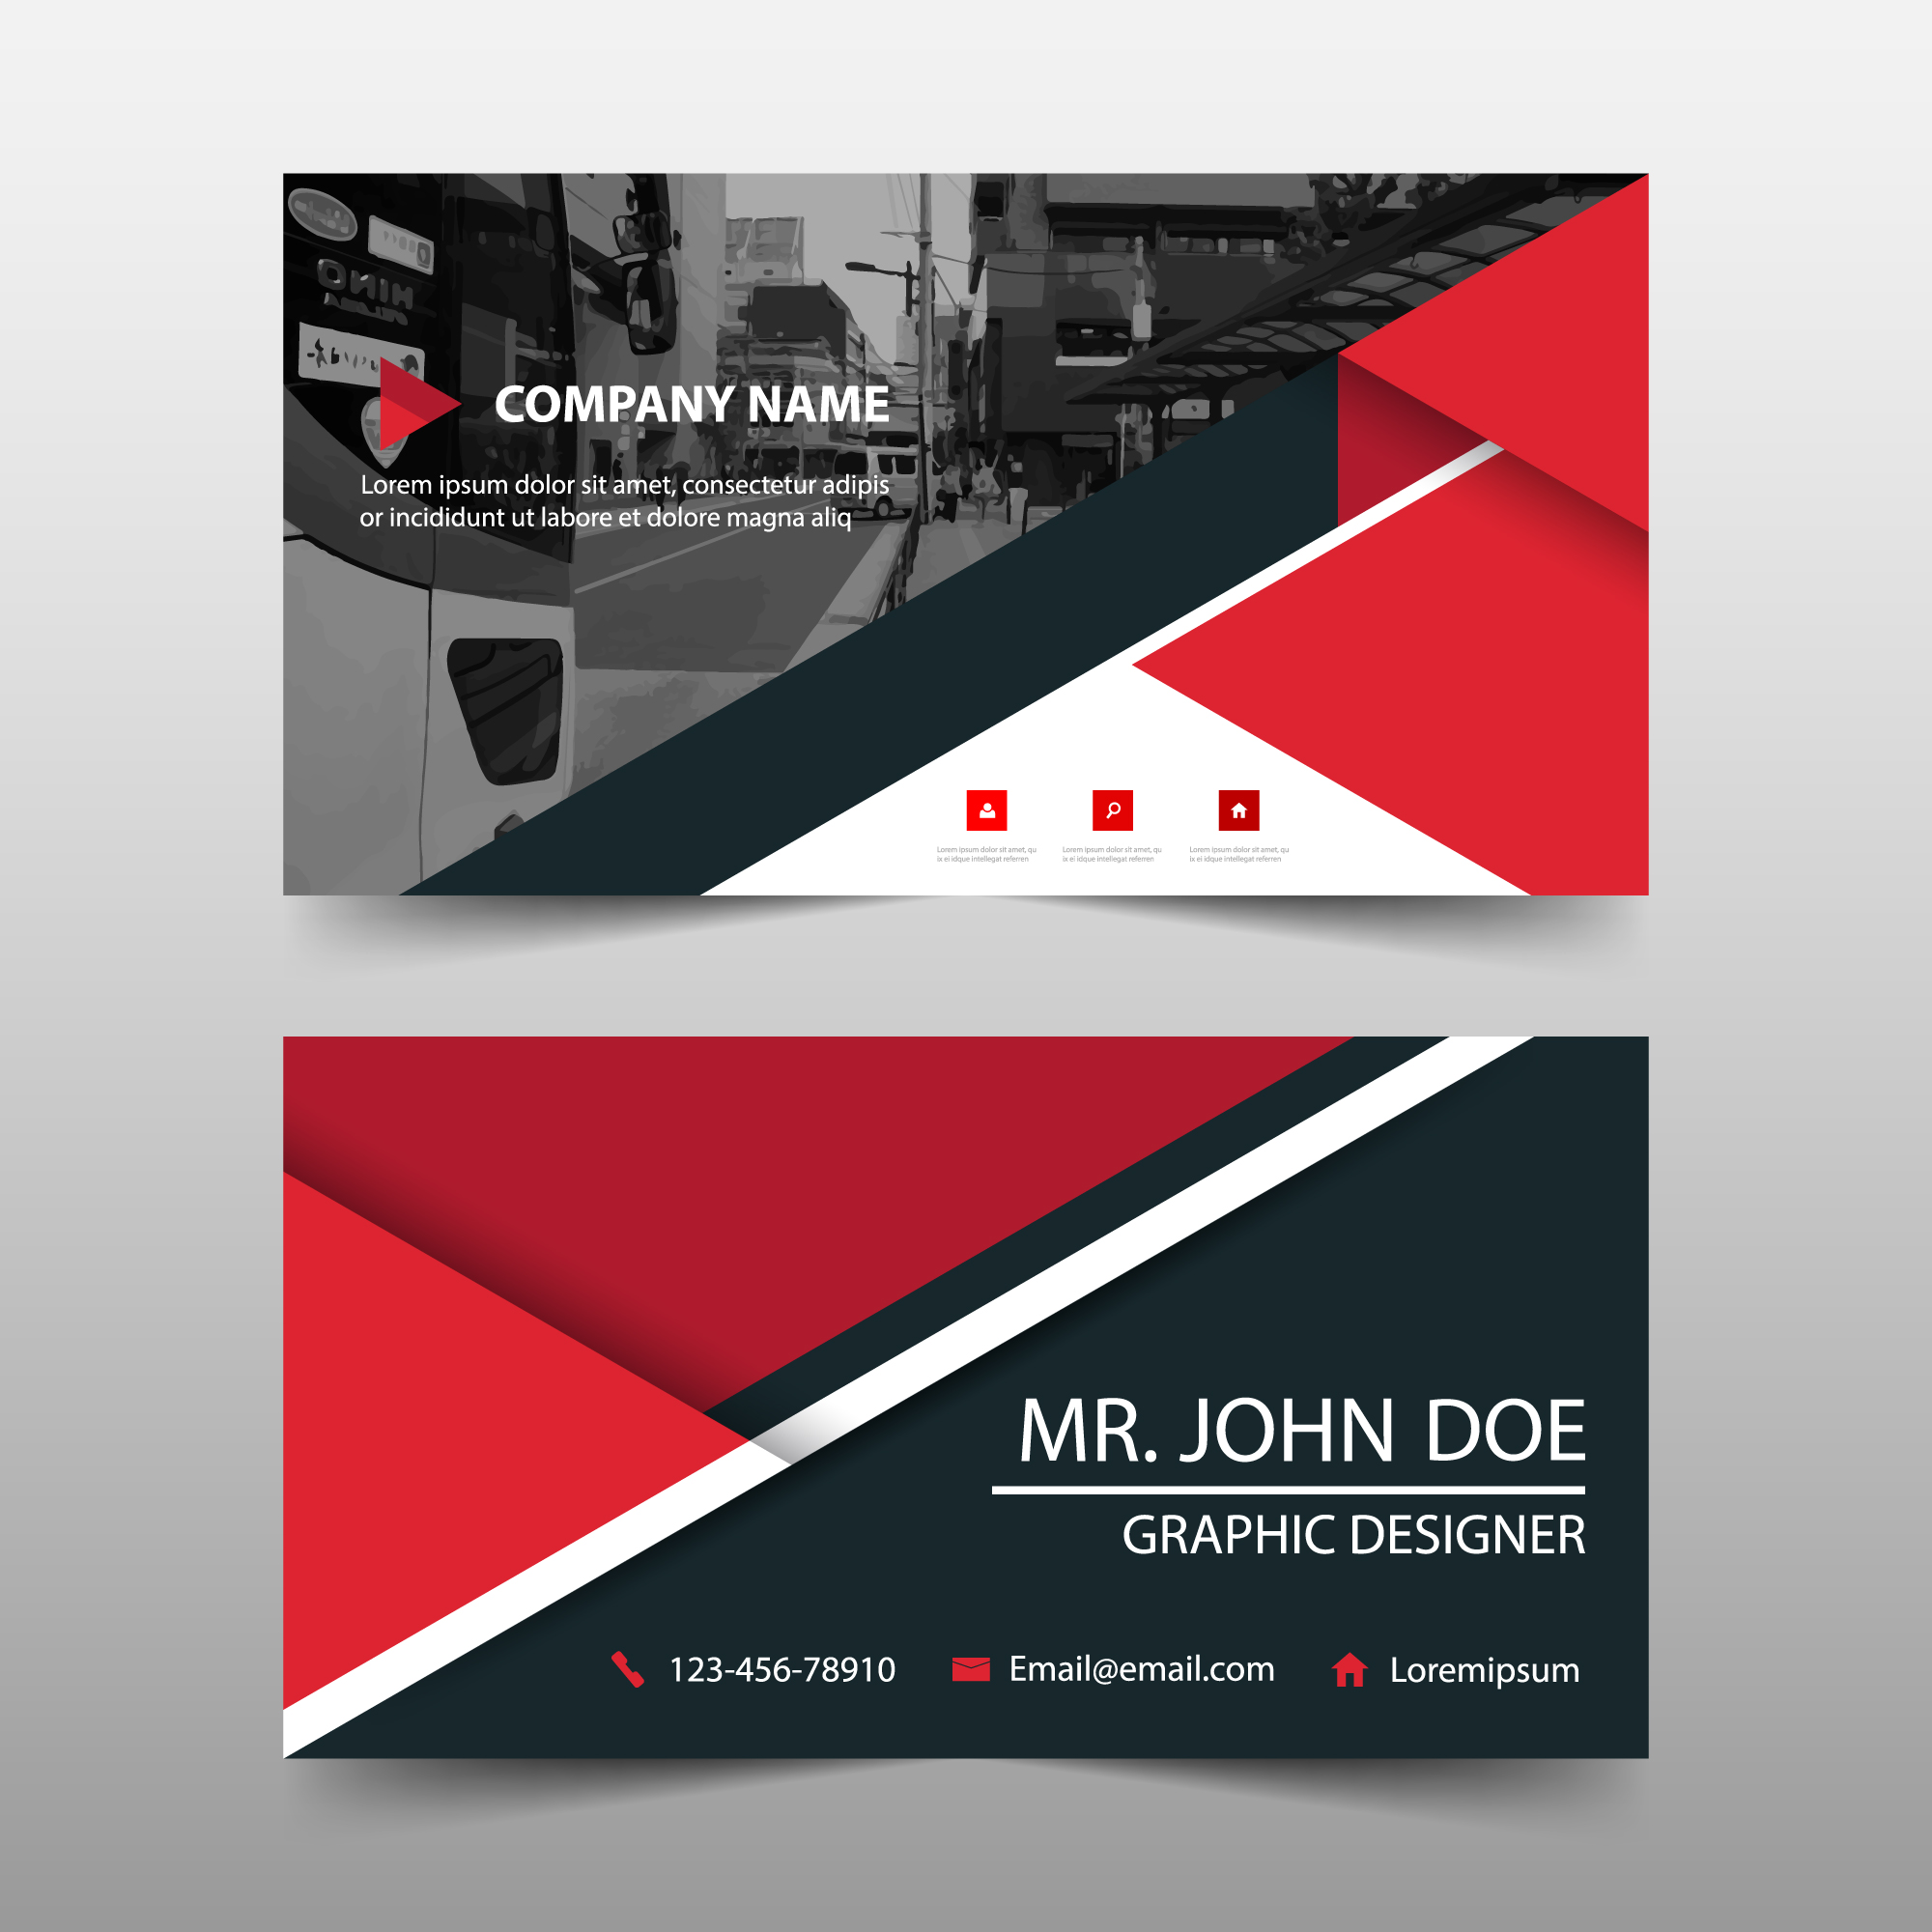 Abstract red business card template design